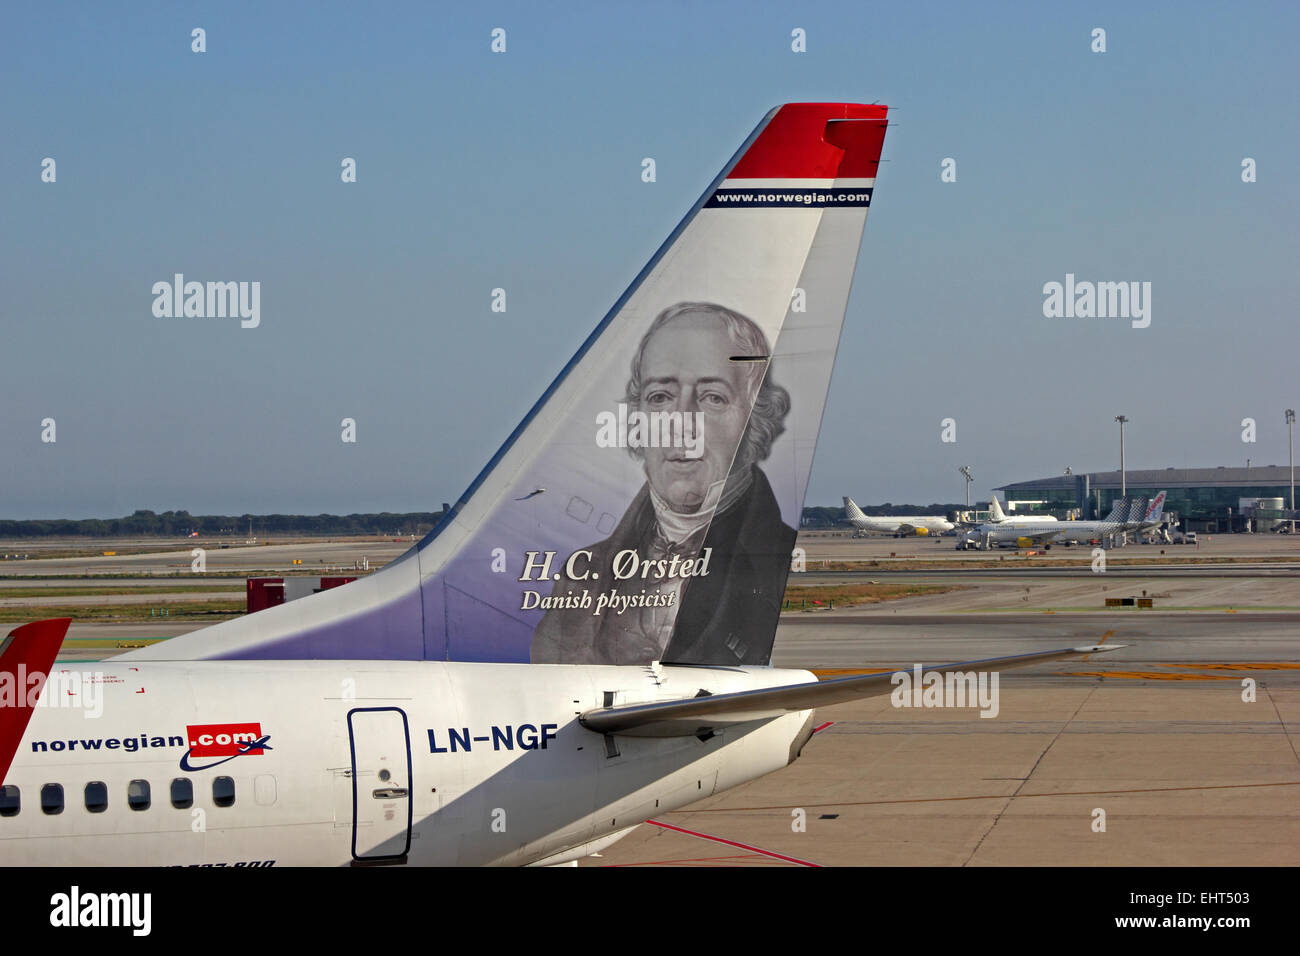 Portrait of H C Orsted on tailplane of Norwegian Air Shuttle Boeing 737-800 - Stock Image